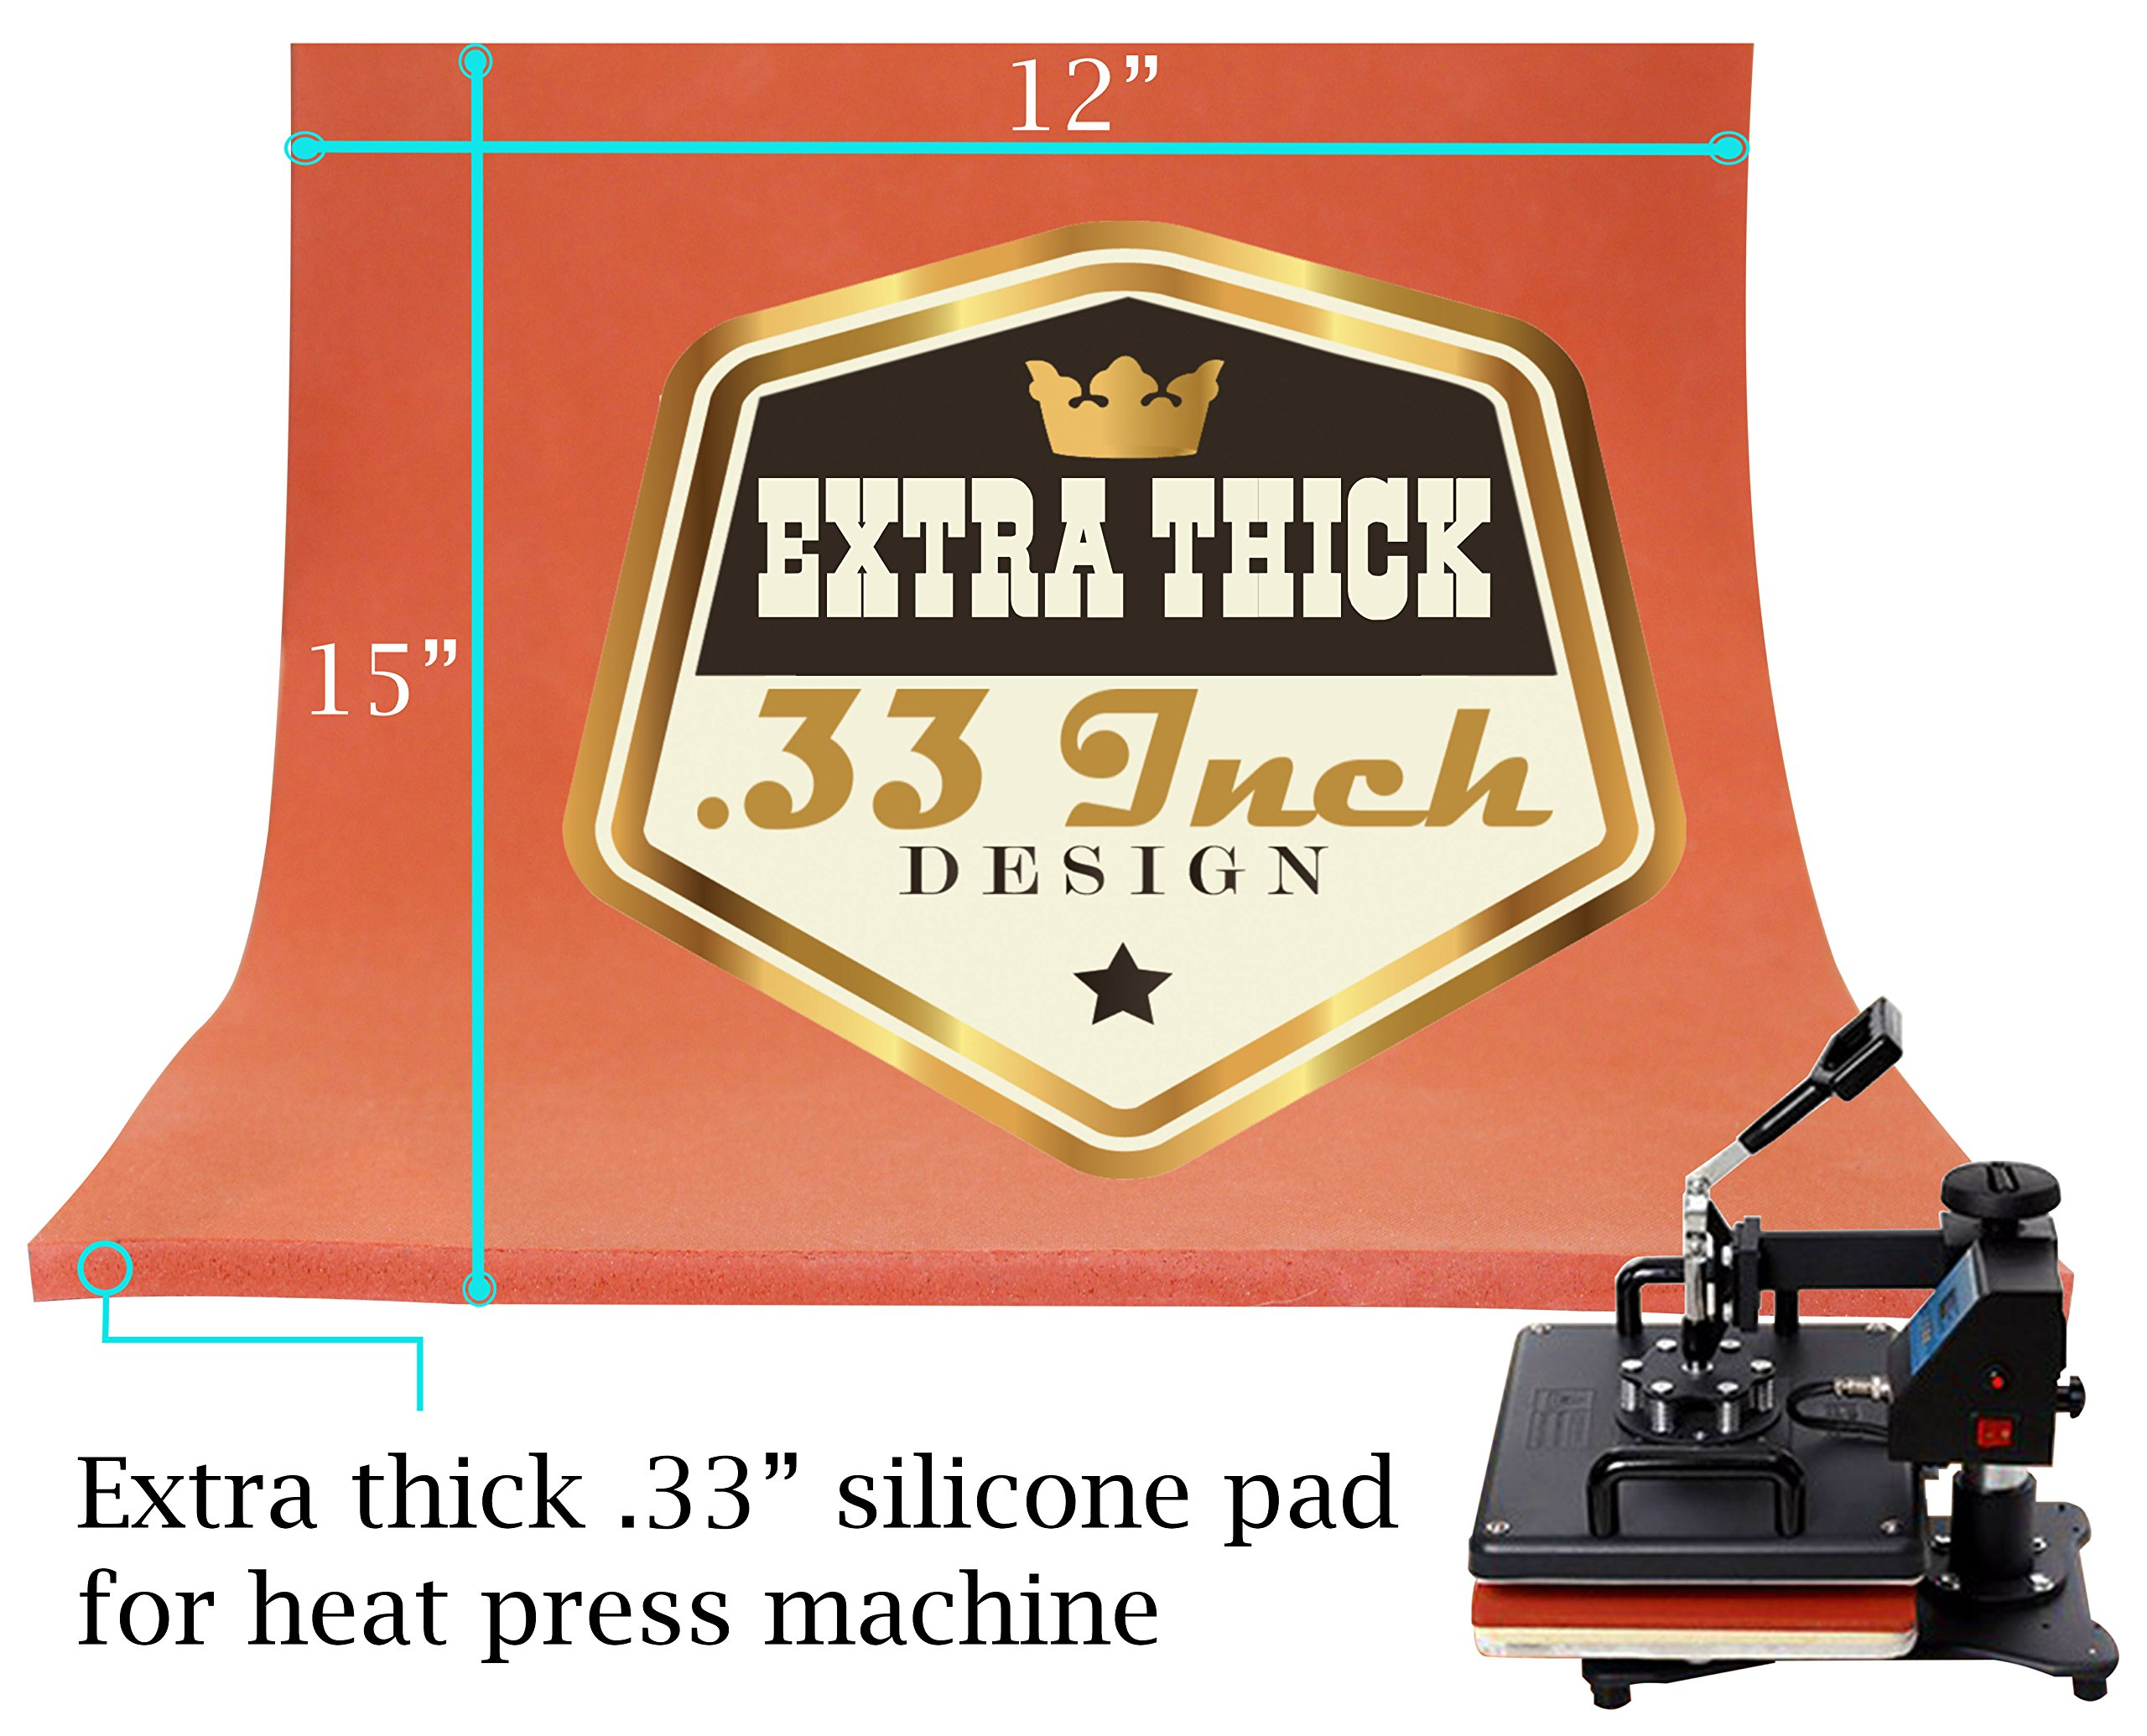 12'' x 15'' Extra Thick Silicone Pad, Heat Press Silicone Mat Replacement, Thickest (.33'') on Amazon by Hoptopper